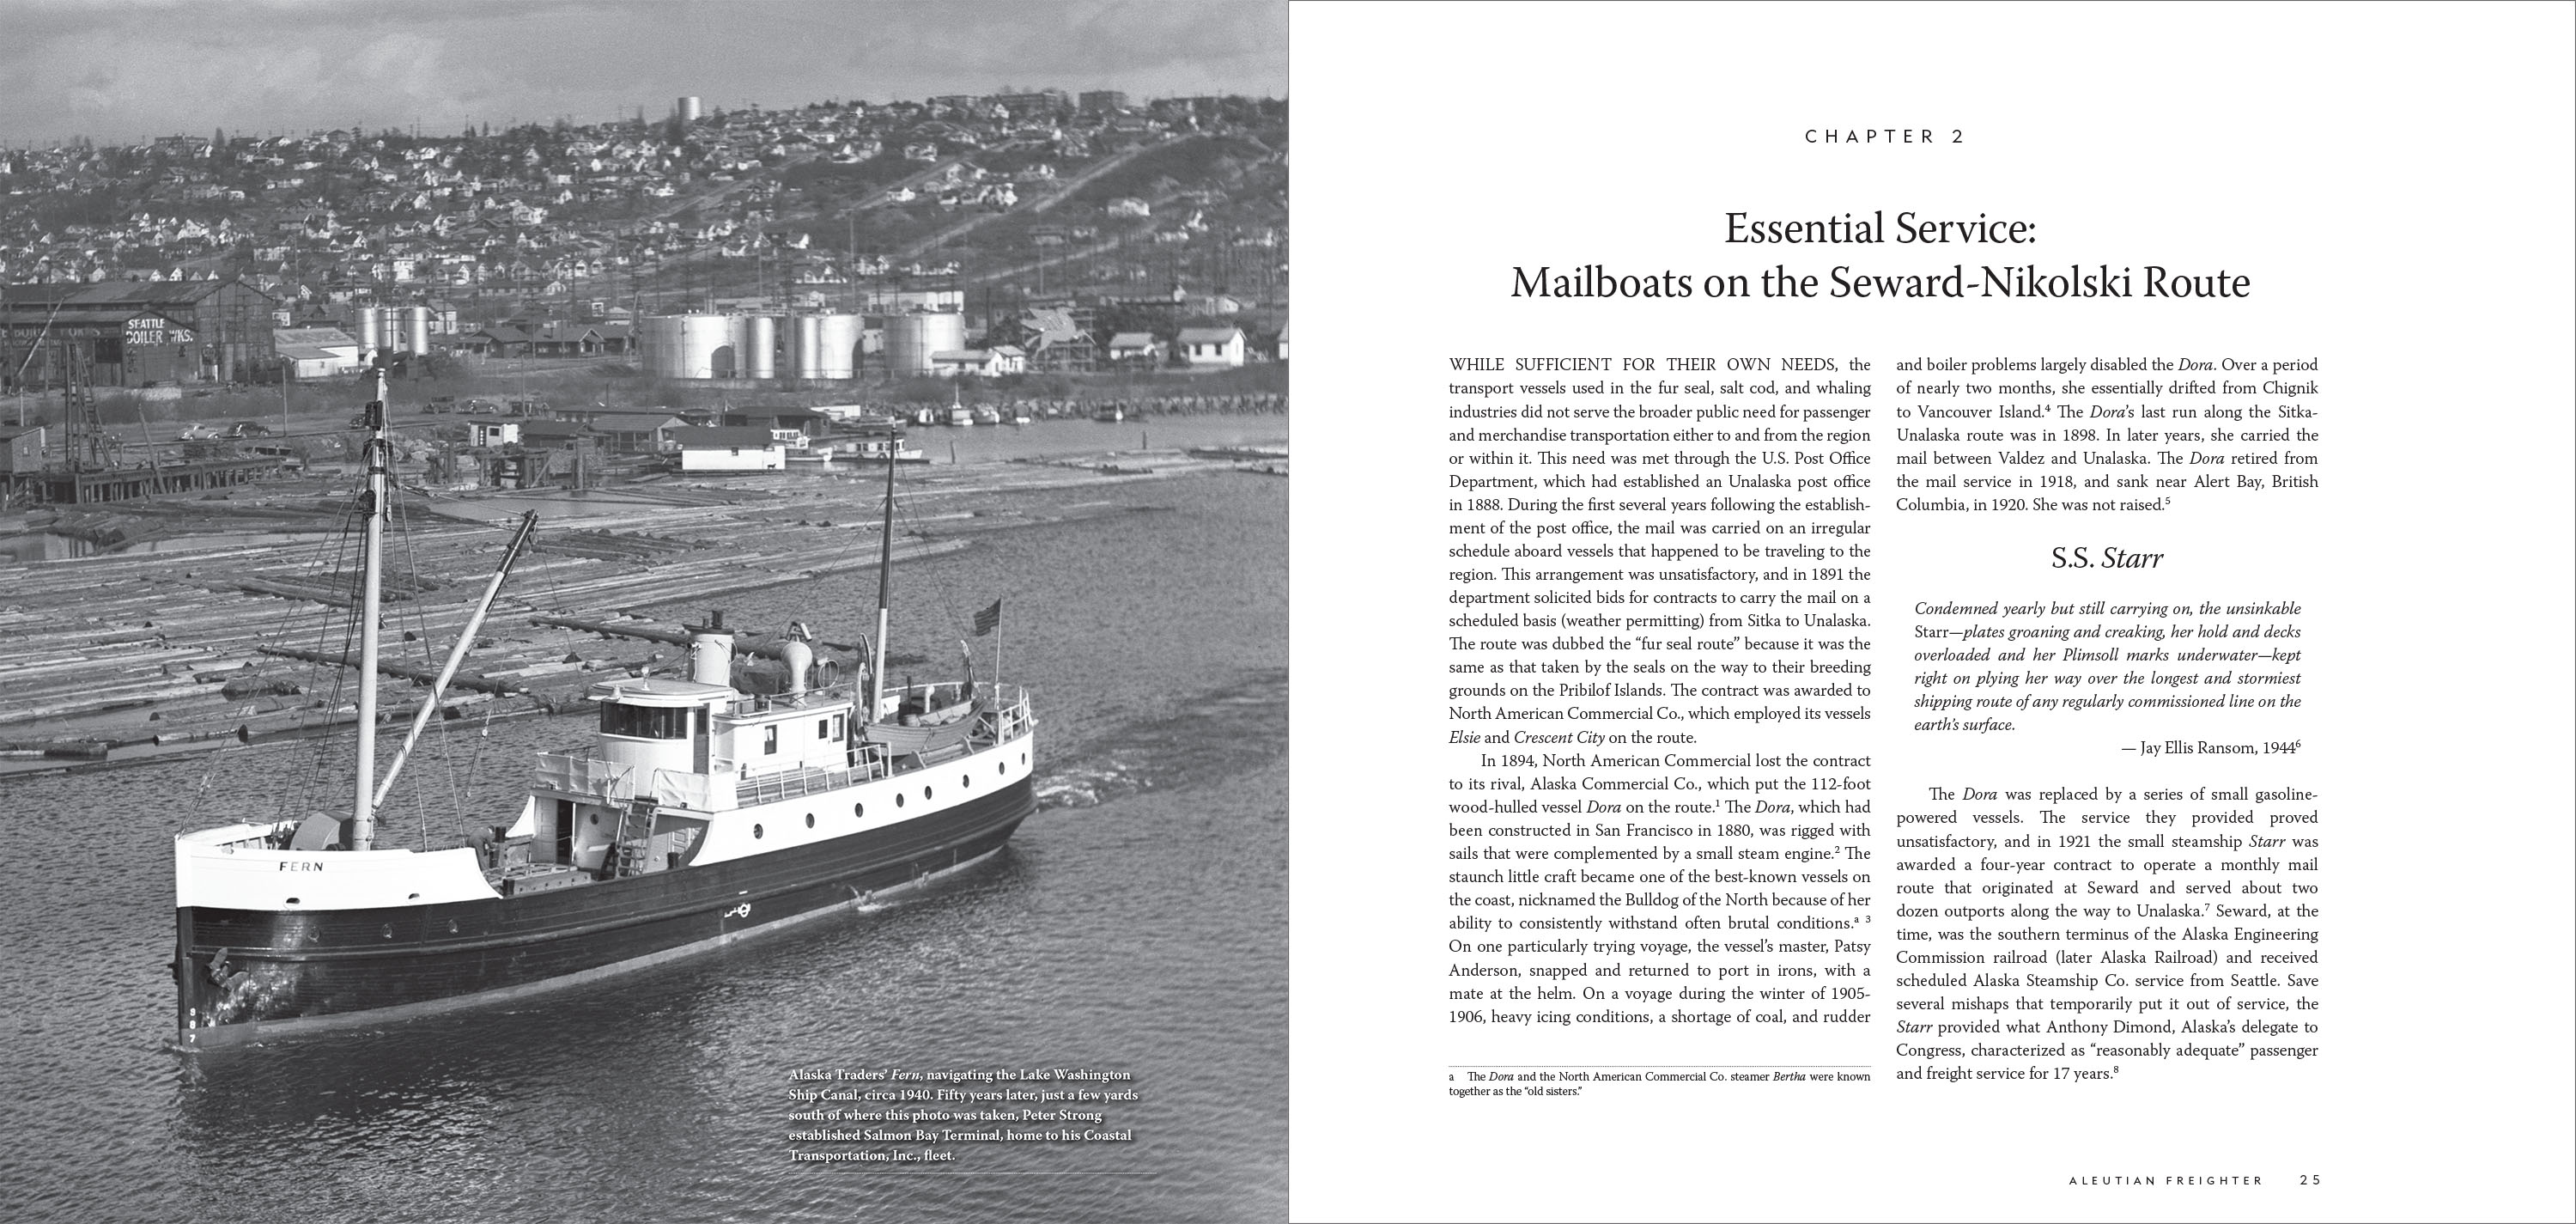 inside the corporate history book Aleutian Freighter